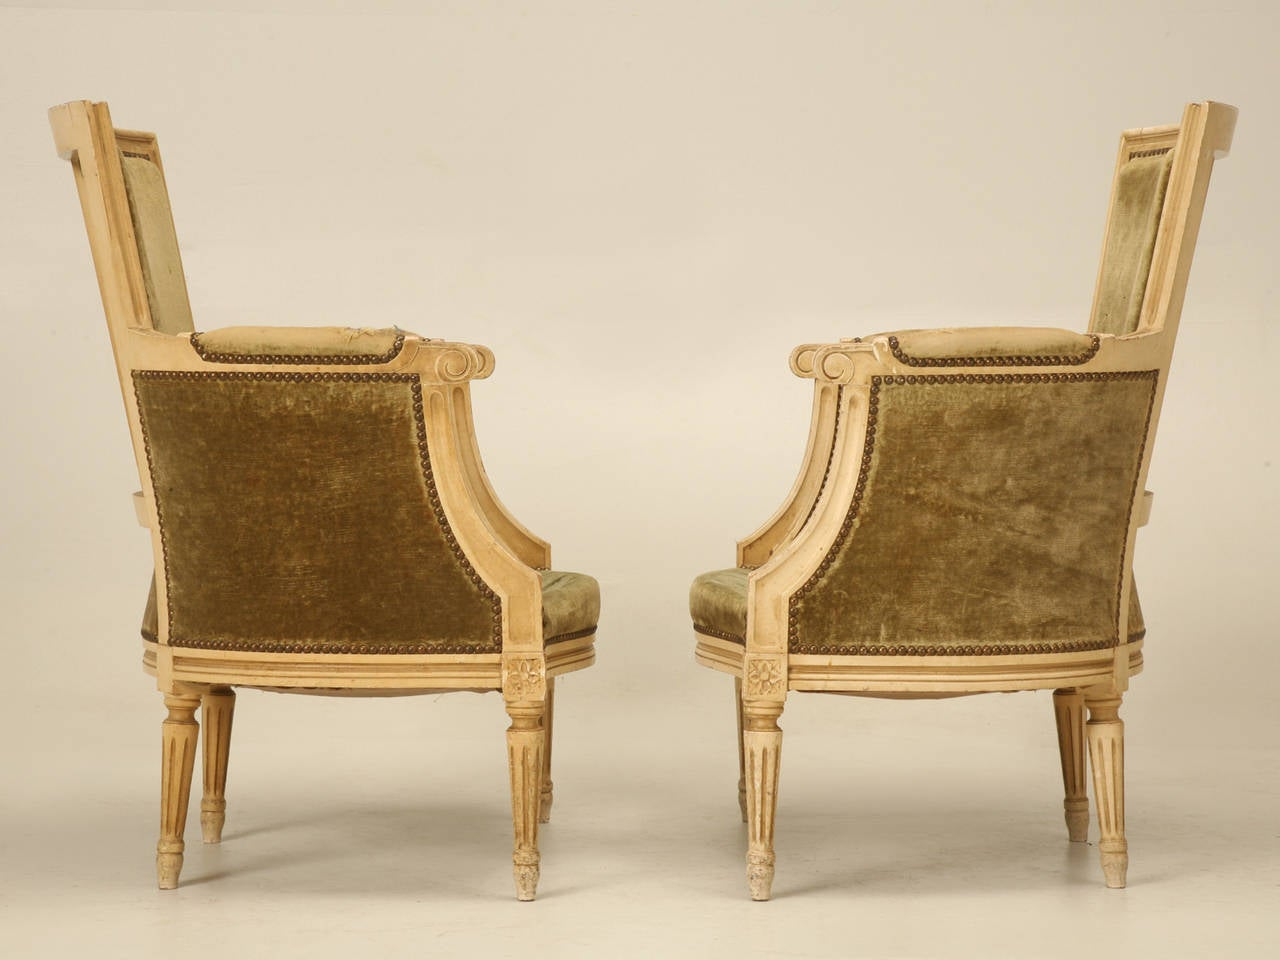 Louis XVI Style Bergere Chairs in Original Paint 9